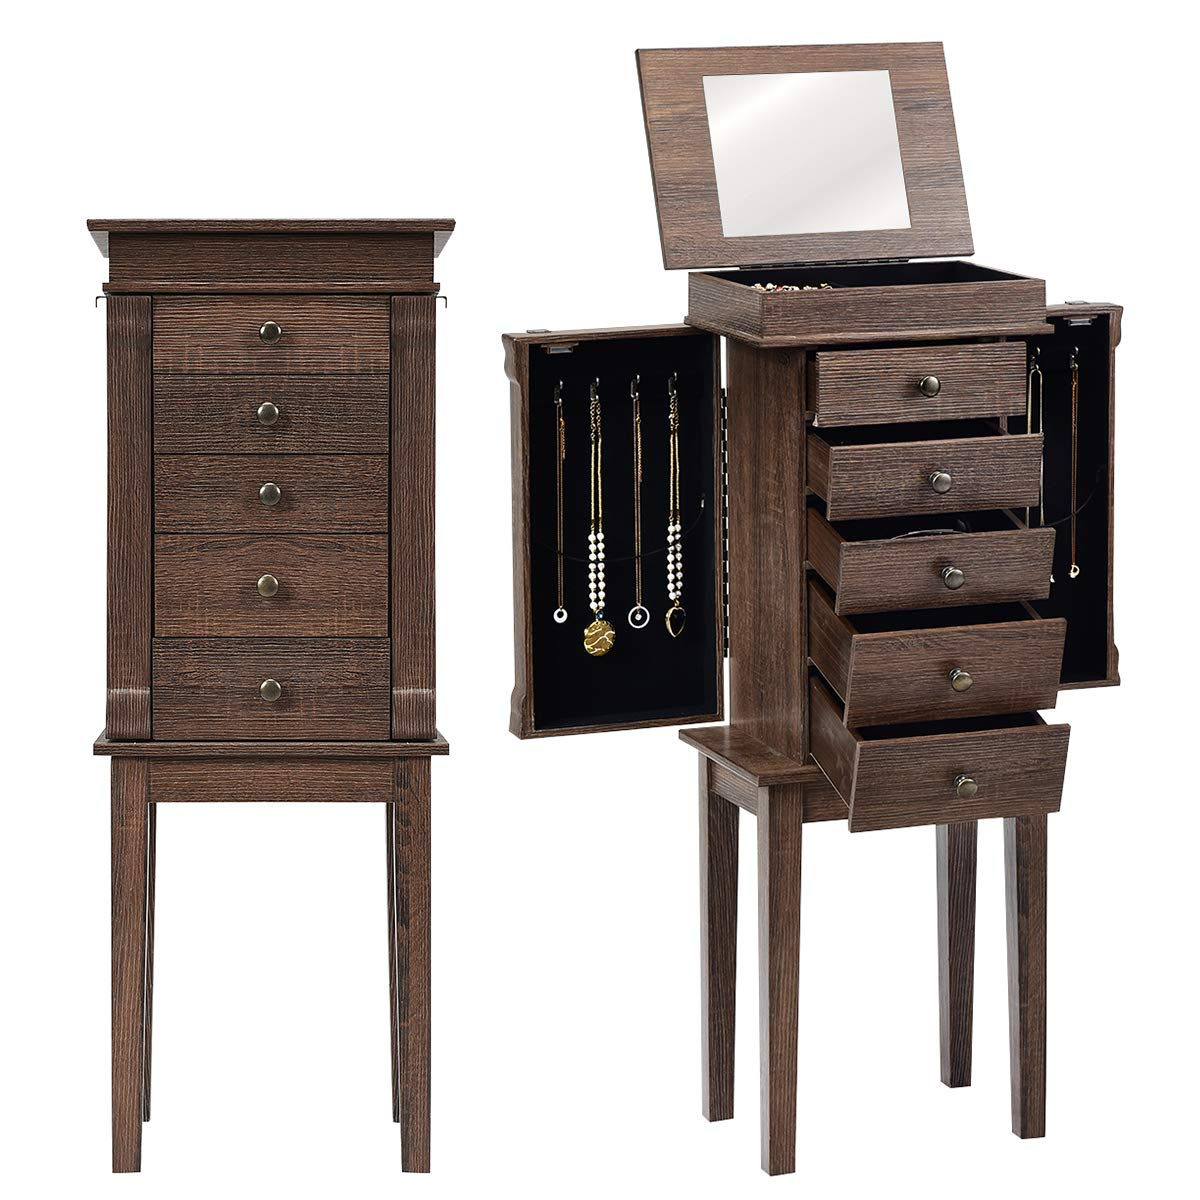 CHARMAID Standing Jewelry Armoire with 5 Drawers & 8 Necklace Hooks, Jewelry Chest Cabinet with Top Storage Organizer Flip Mirror, 2 Side Swing Doors, Standing Jewelry Cabinets (Brown)